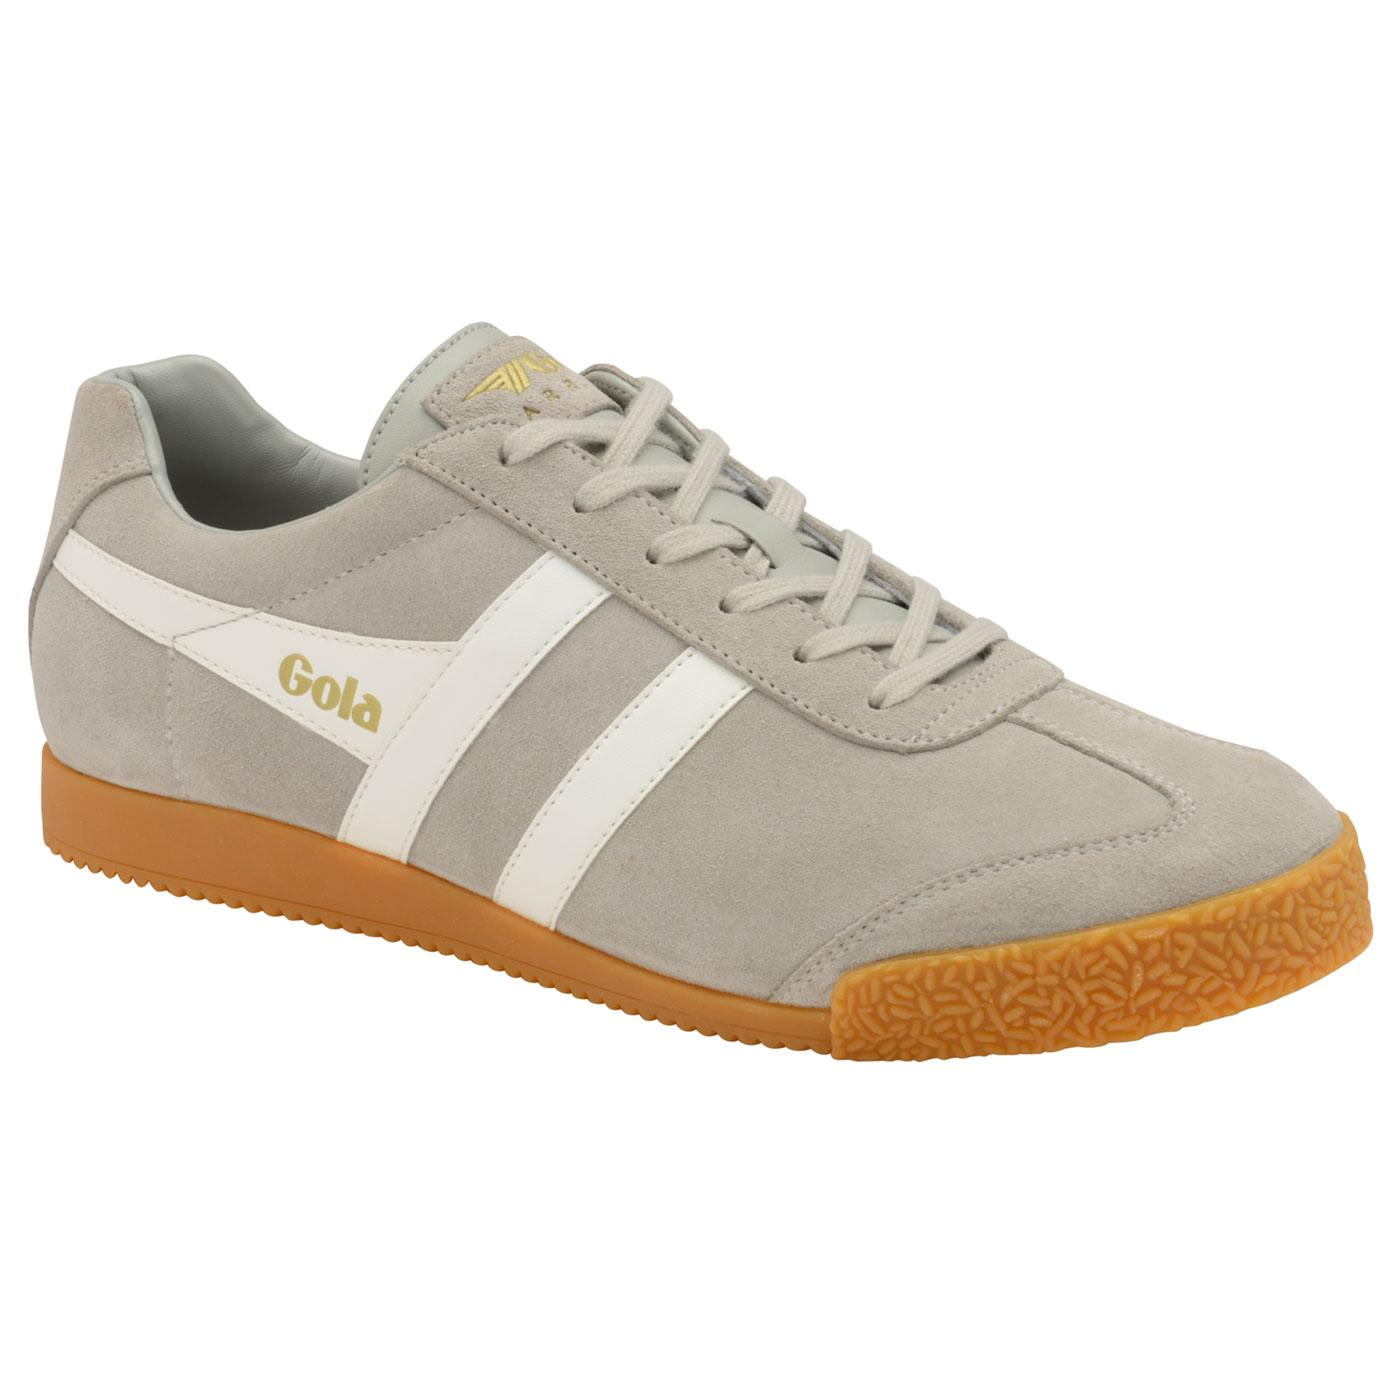 GOLA Harrier Suede Mens Retro Trainers Light Grey